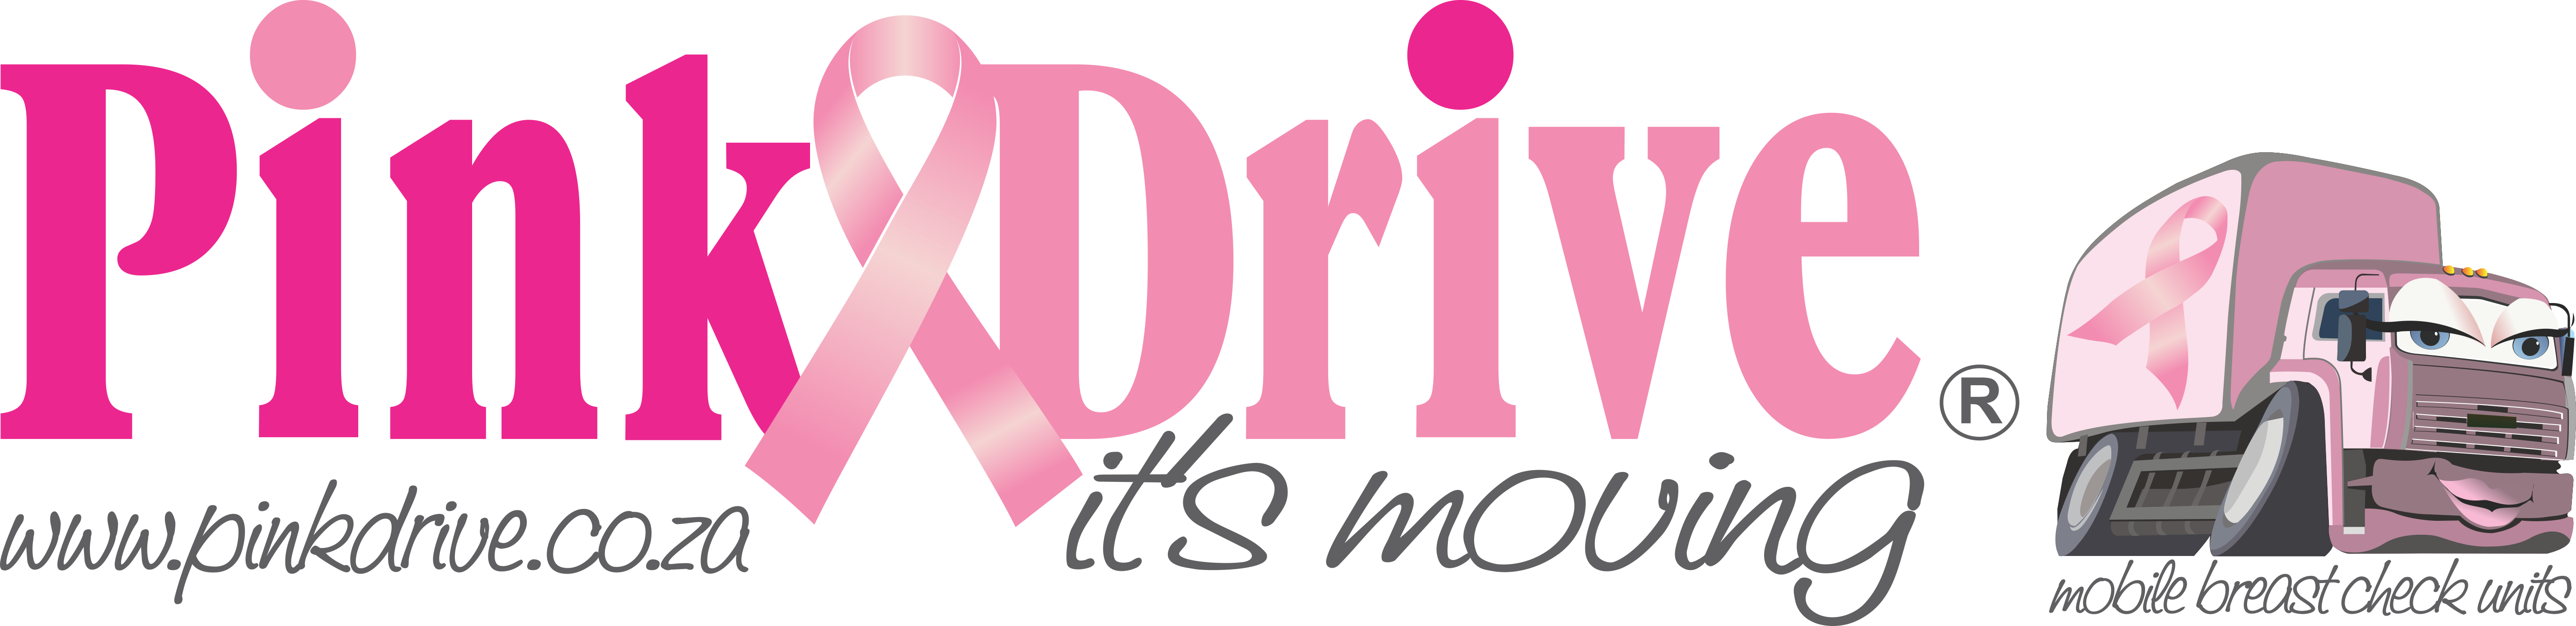 pinkdrive-logo-with-truck